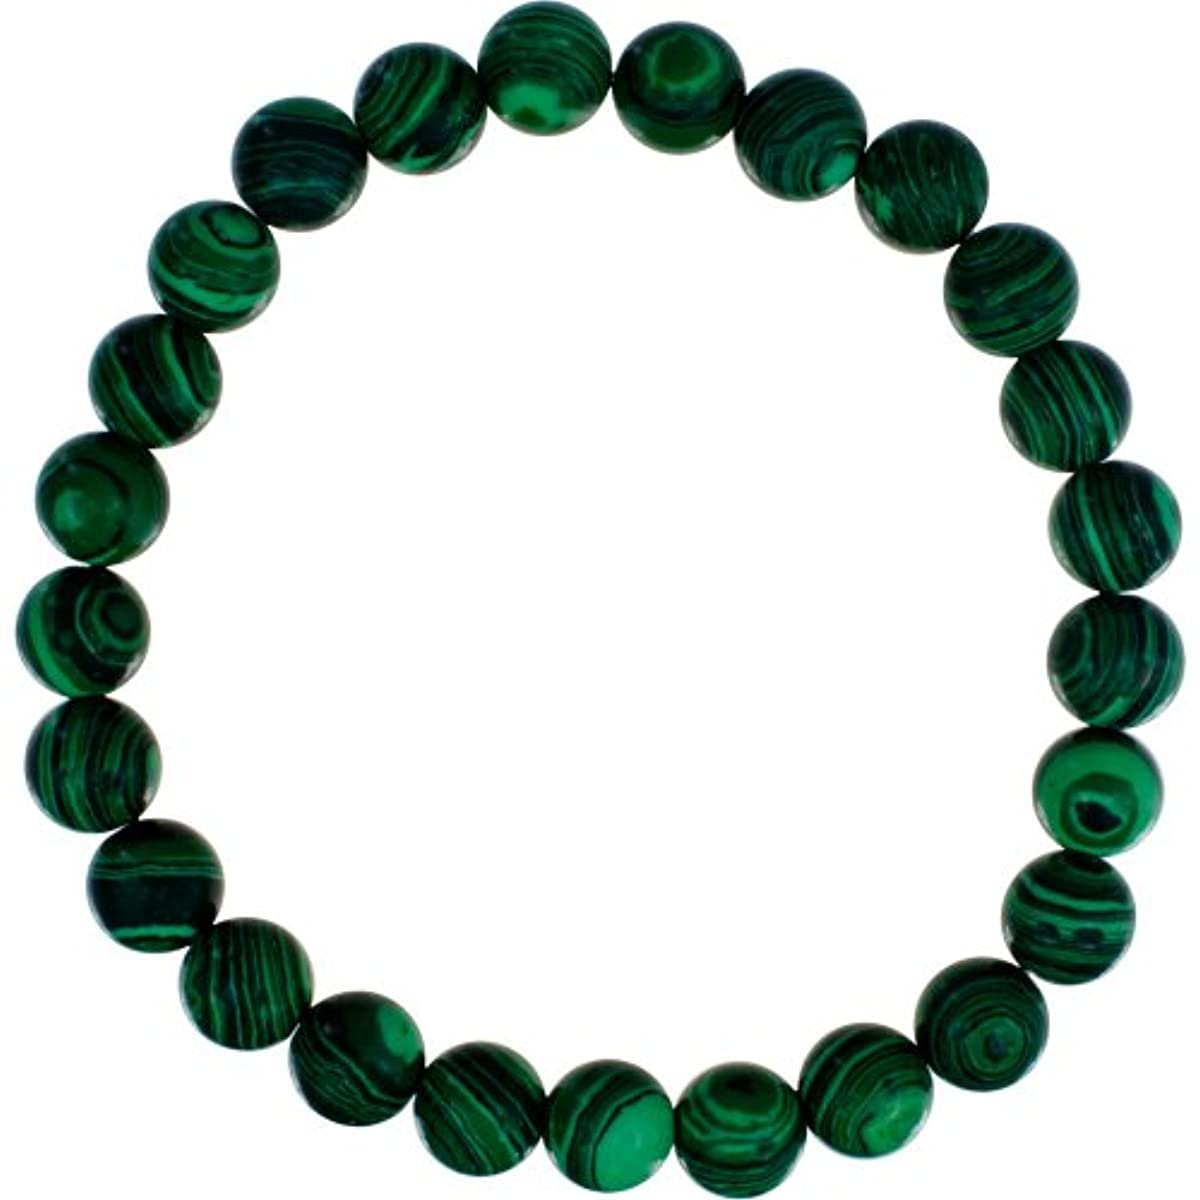 Elastic Bracelet 8mm Round Beads - Synthetic Malachite